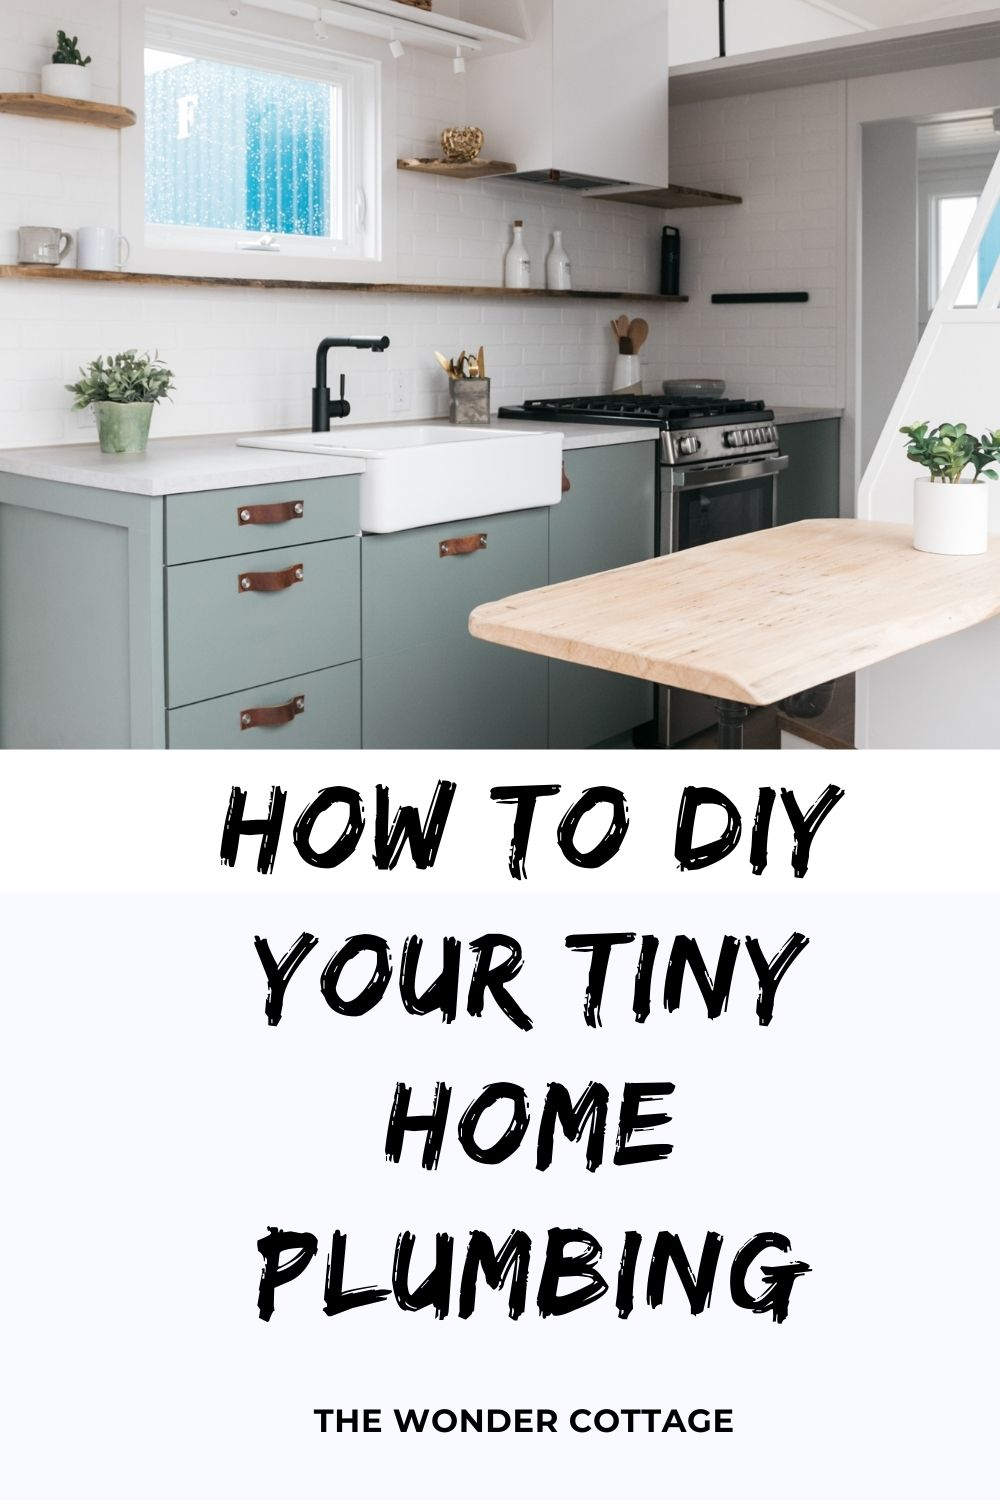 How to diy your tiny home plumbing